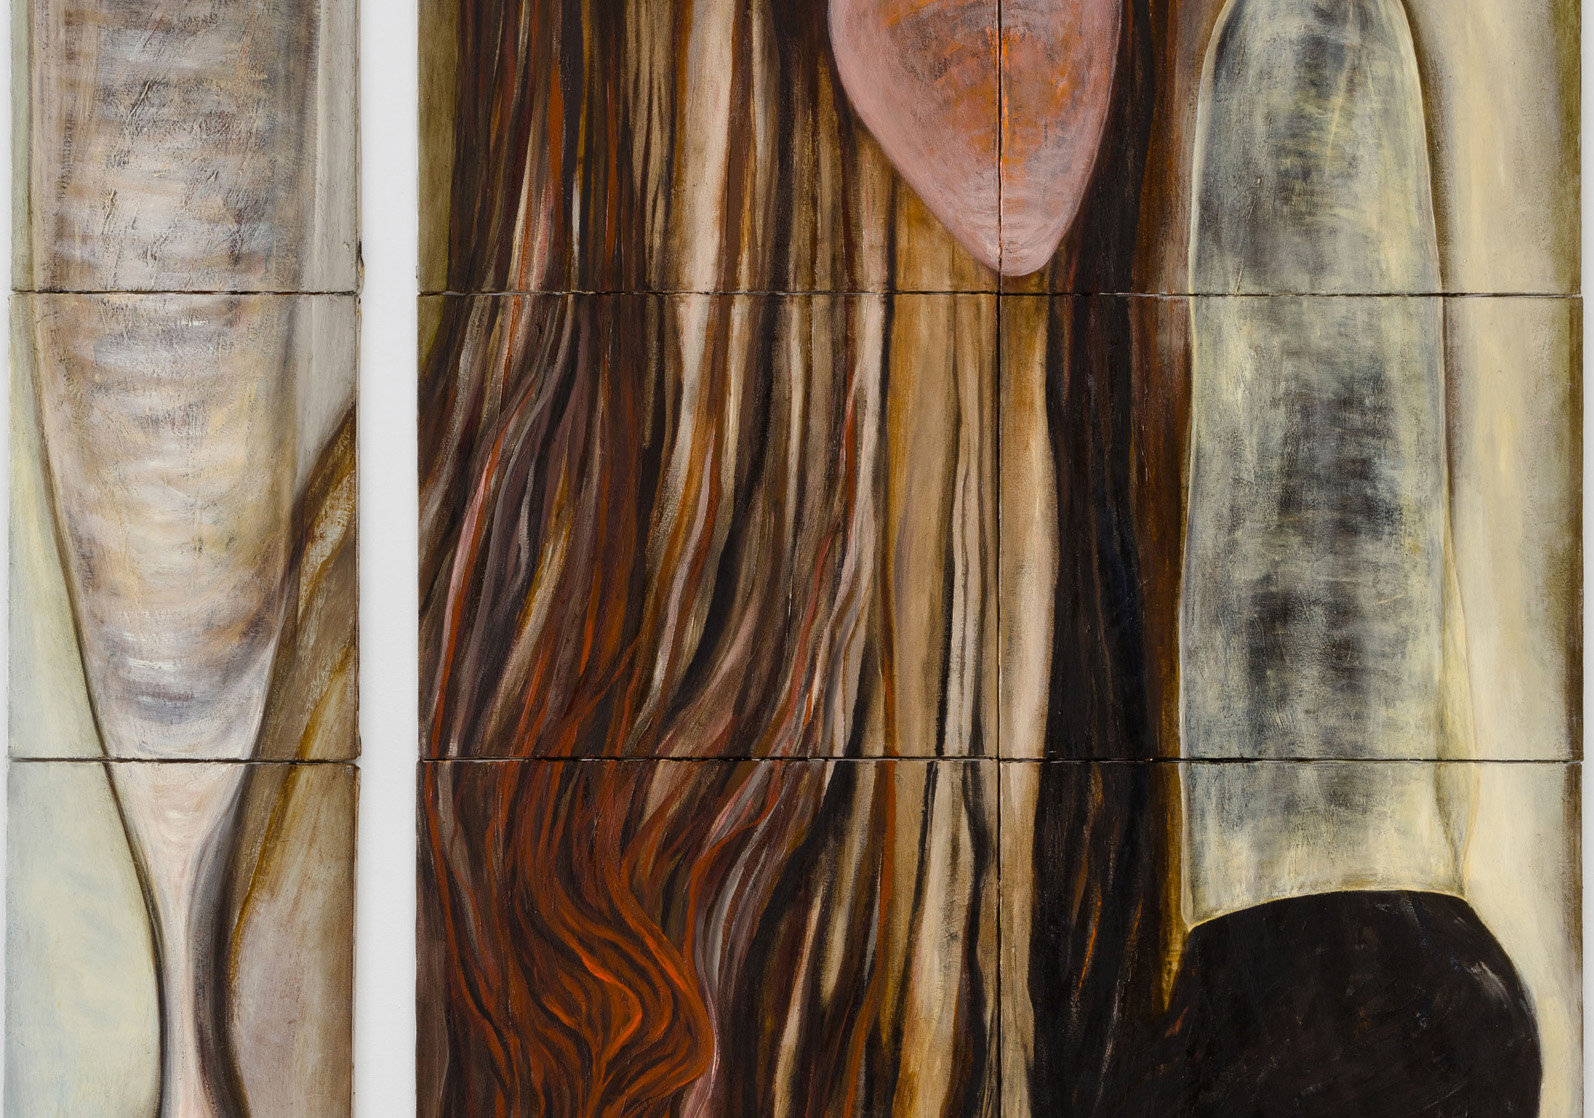 Mira Schor   Dicks or Impregnation of the Universe , 1988  Oil on 21 canvases  Detail view